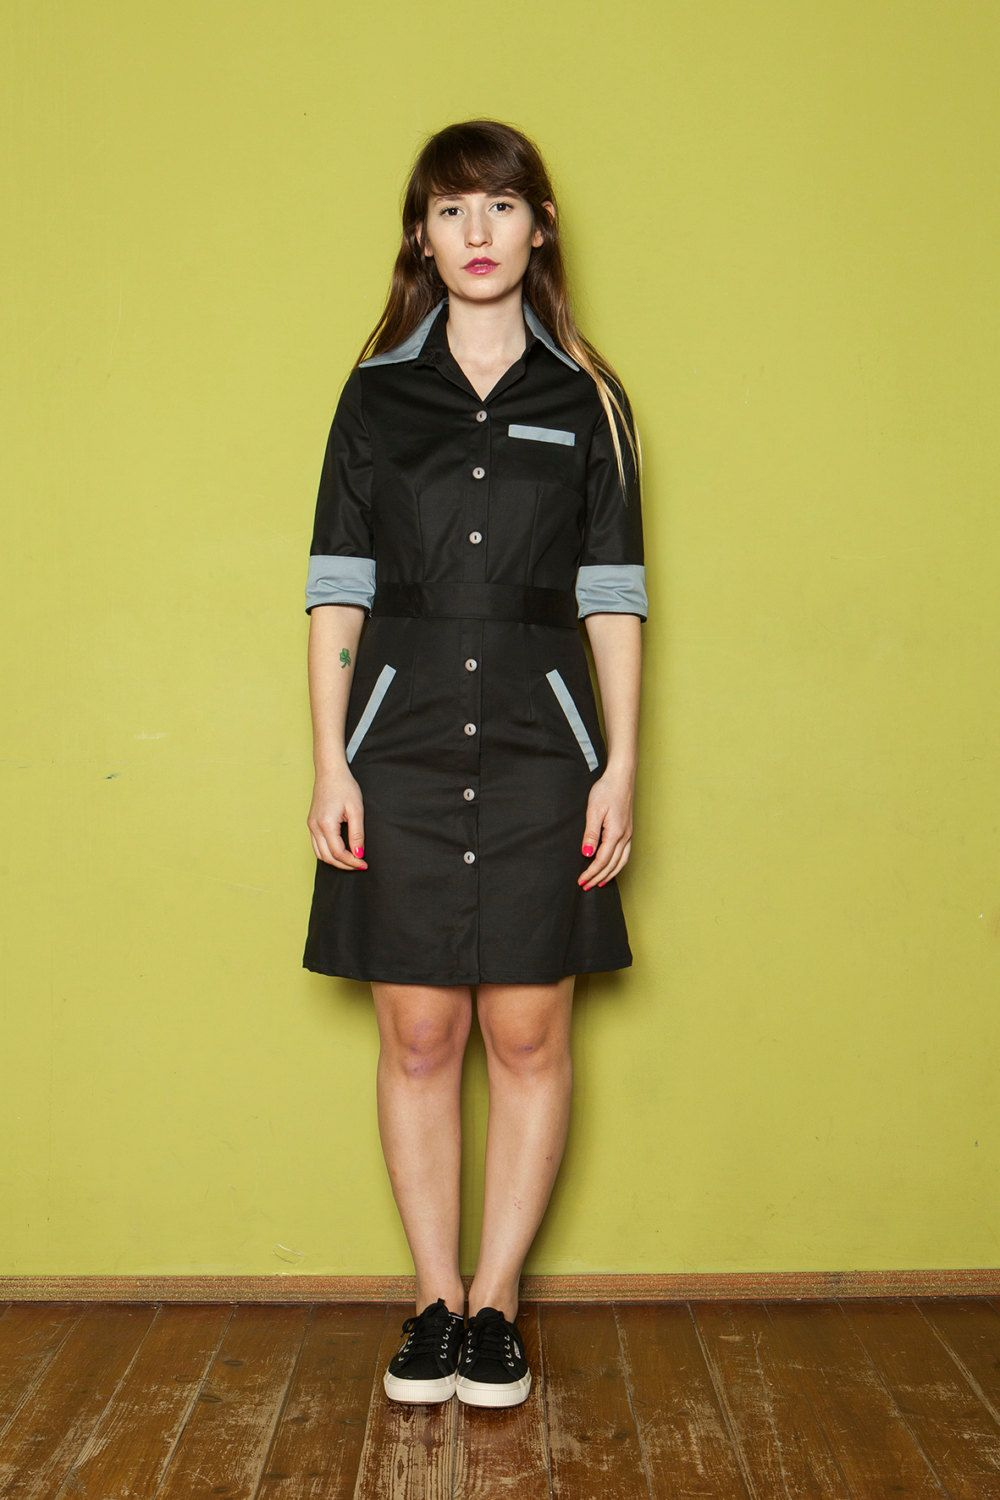 black diner waitress uniform - Google Search | Mom\'s Uniforms ...